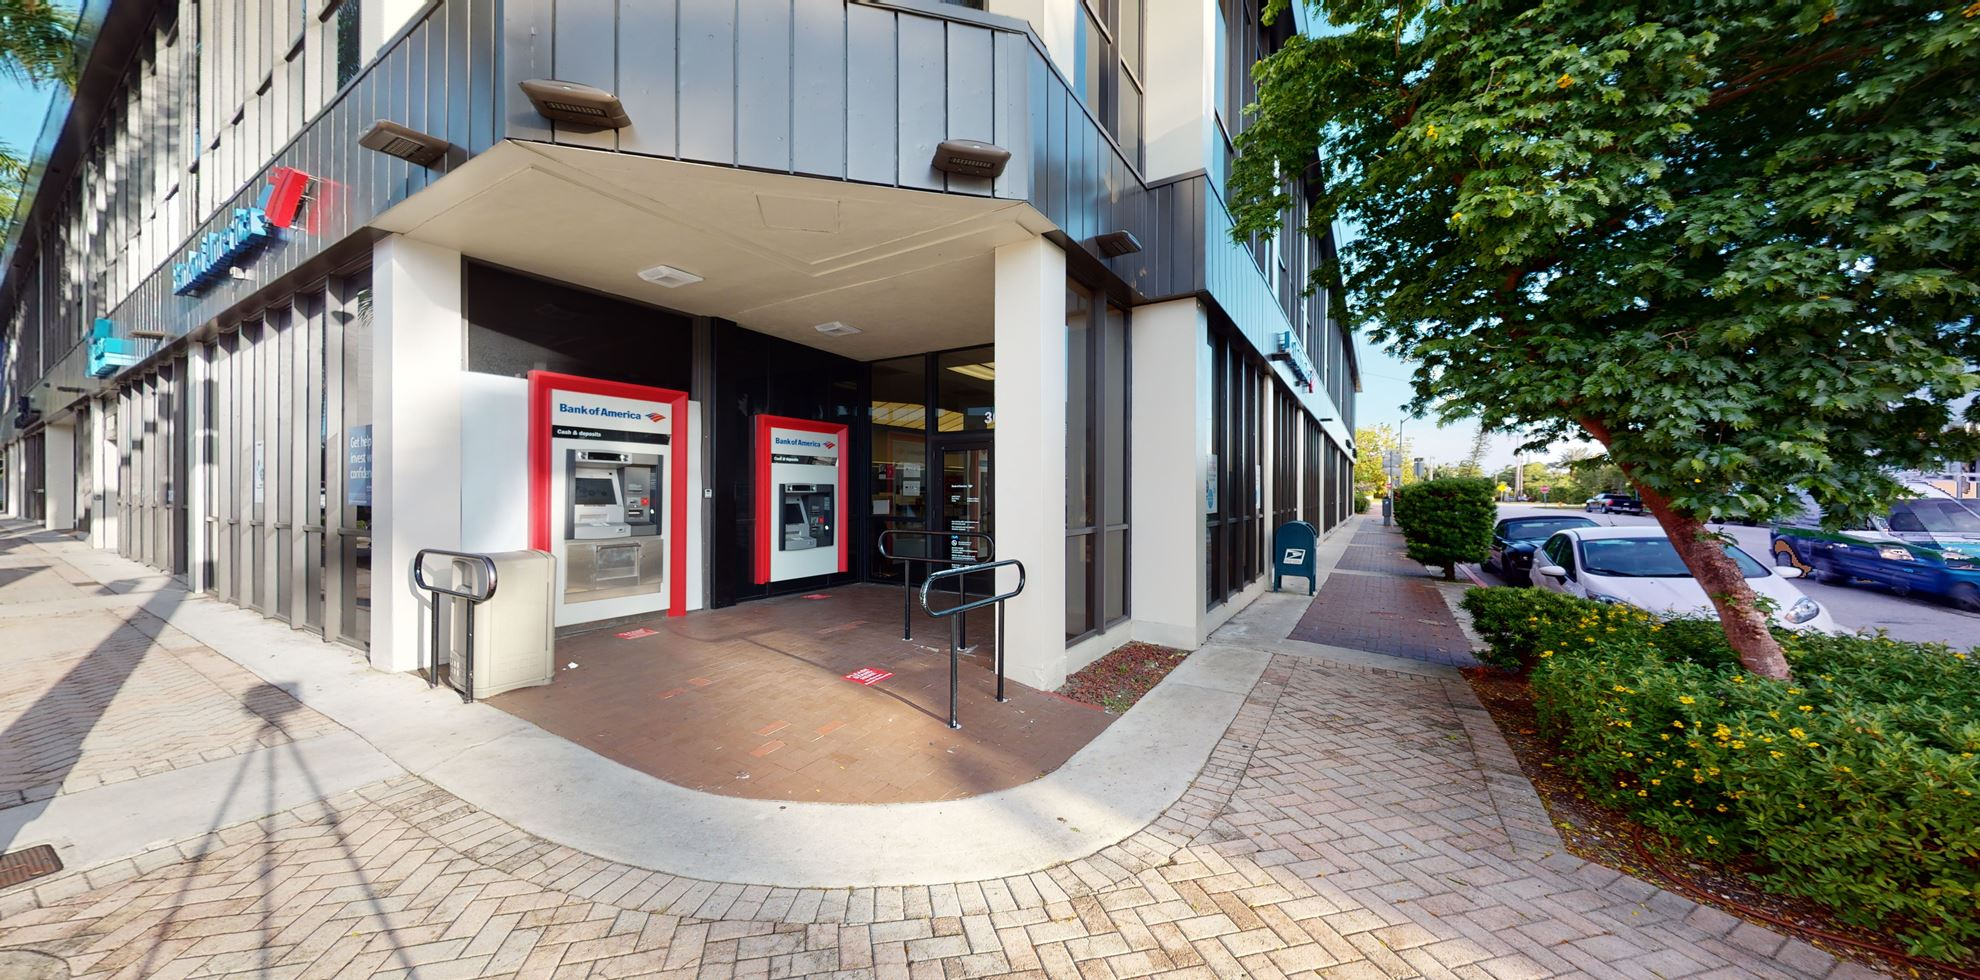 Bank of America financial center with walk-up ATM   360 W 41st St, Miami Beach, FL 33140